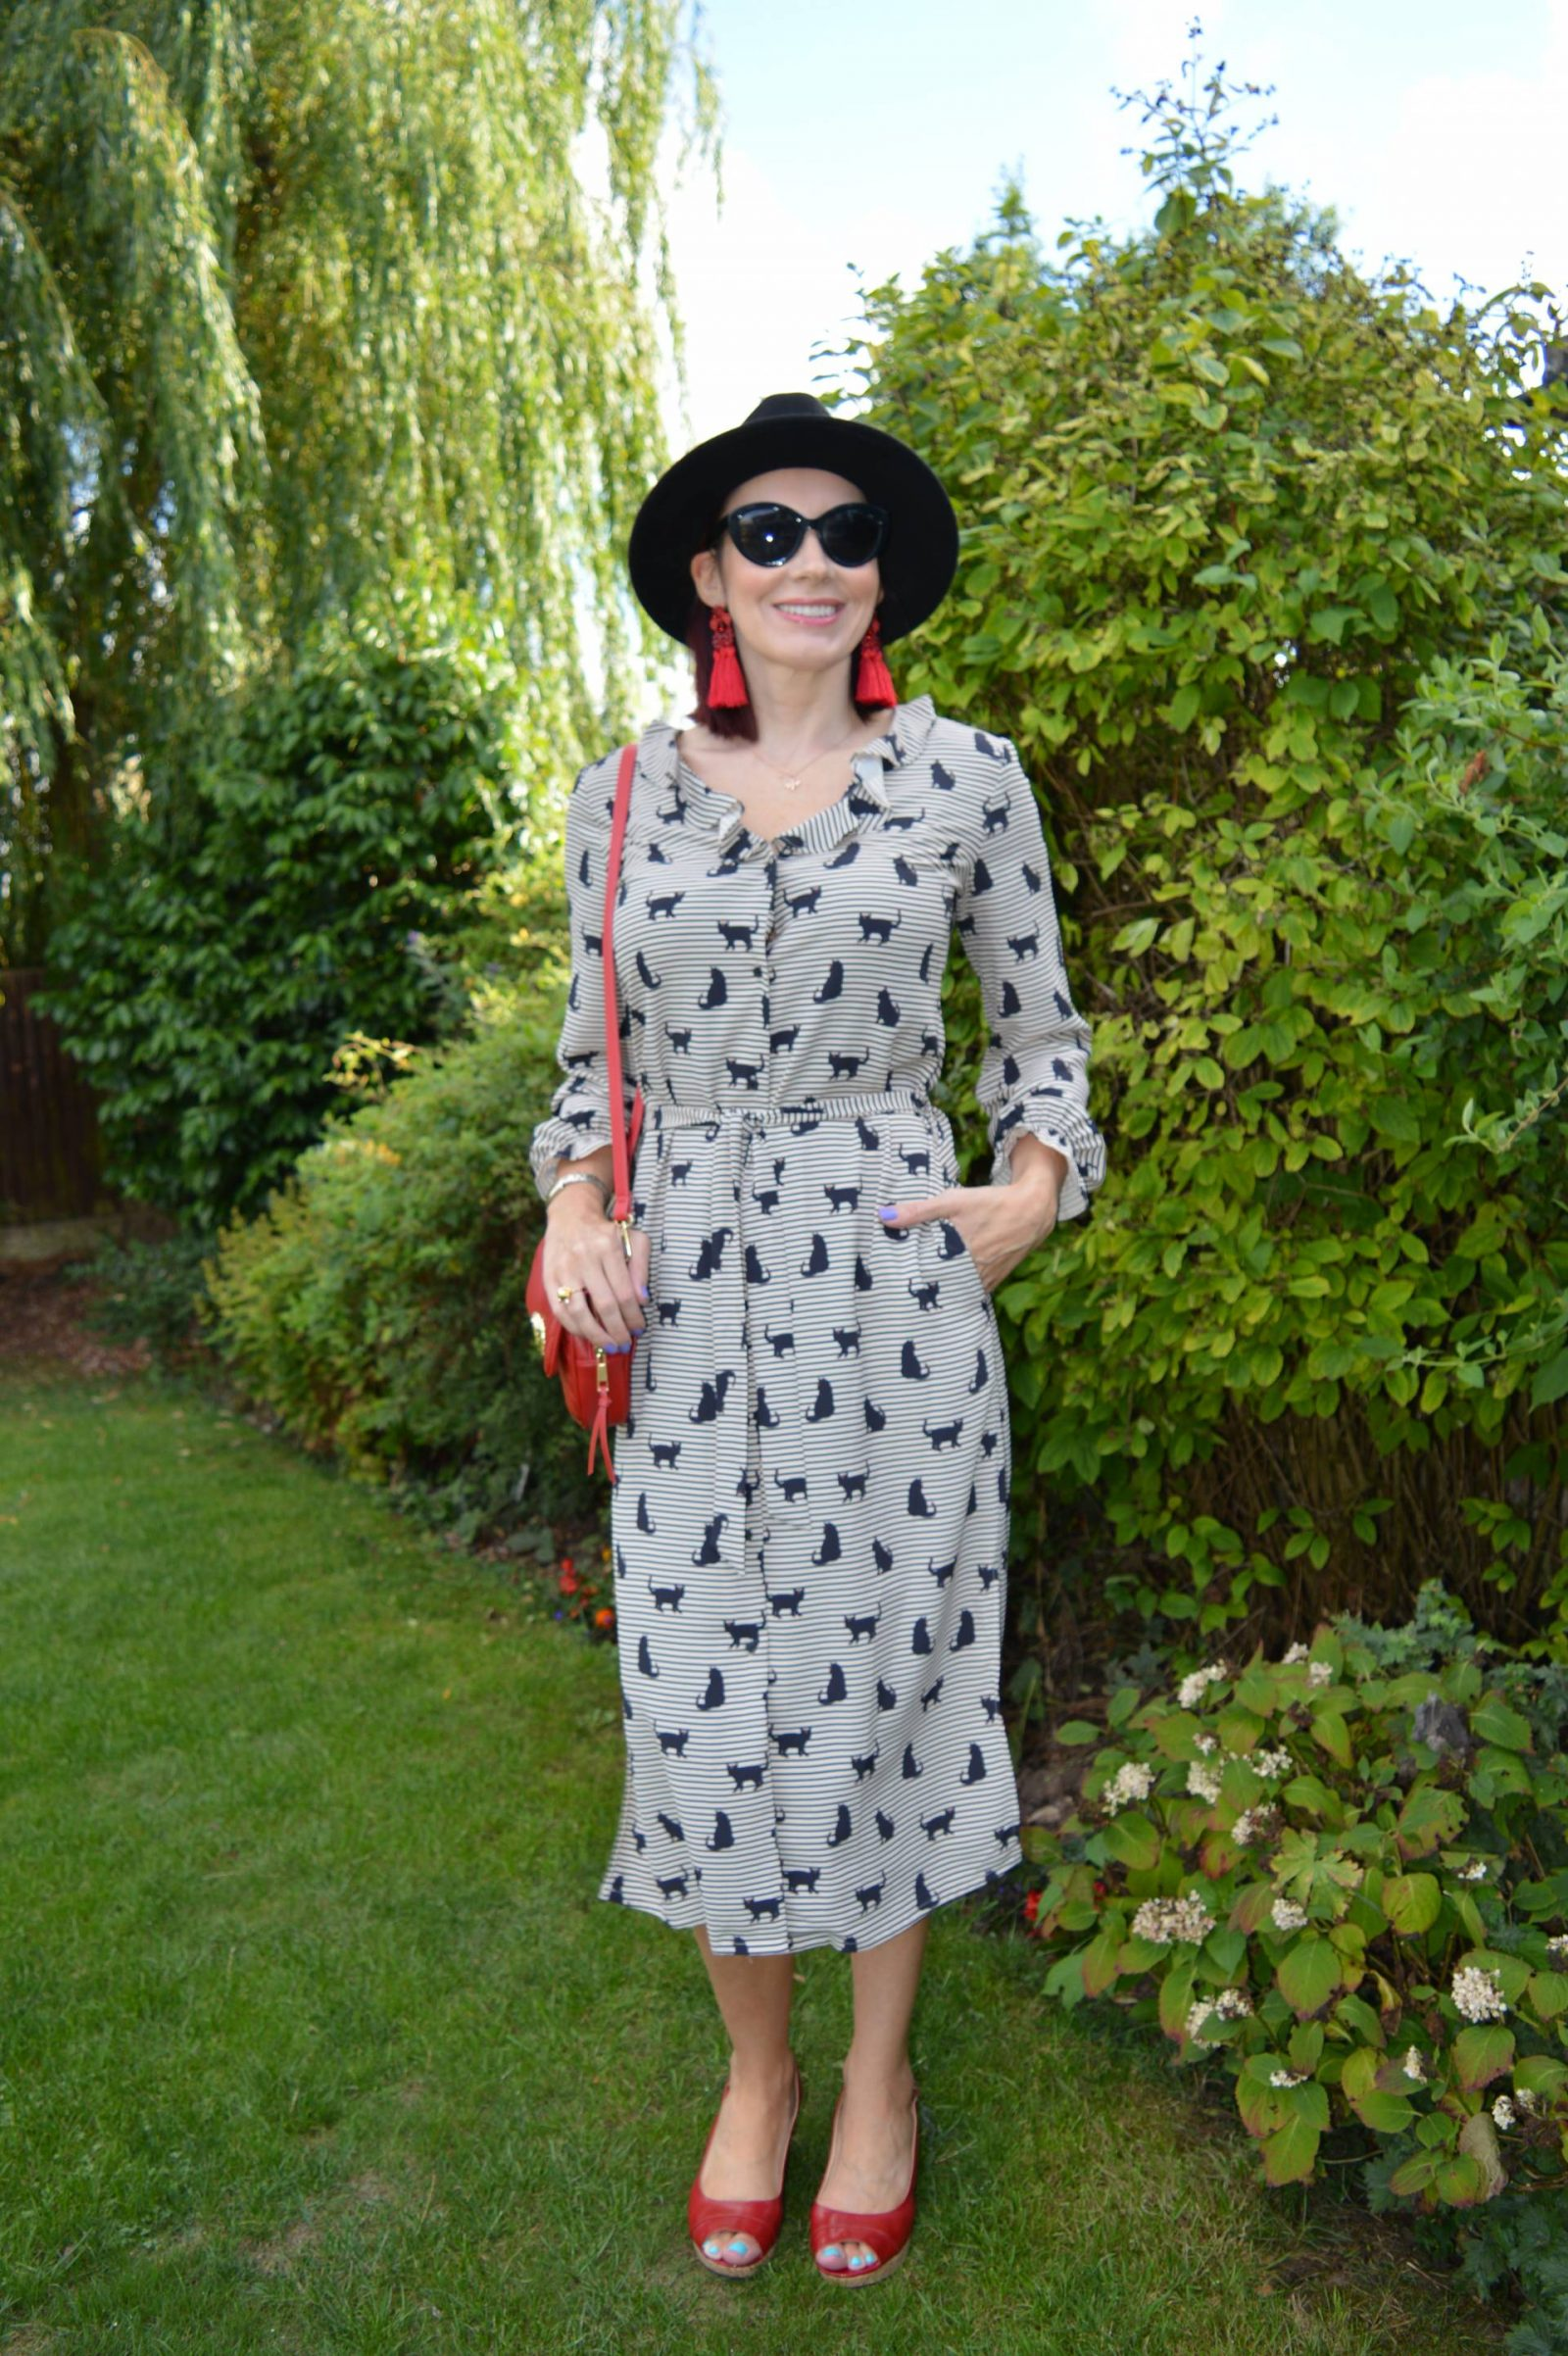 Next Cat print shirt dress with red accessories